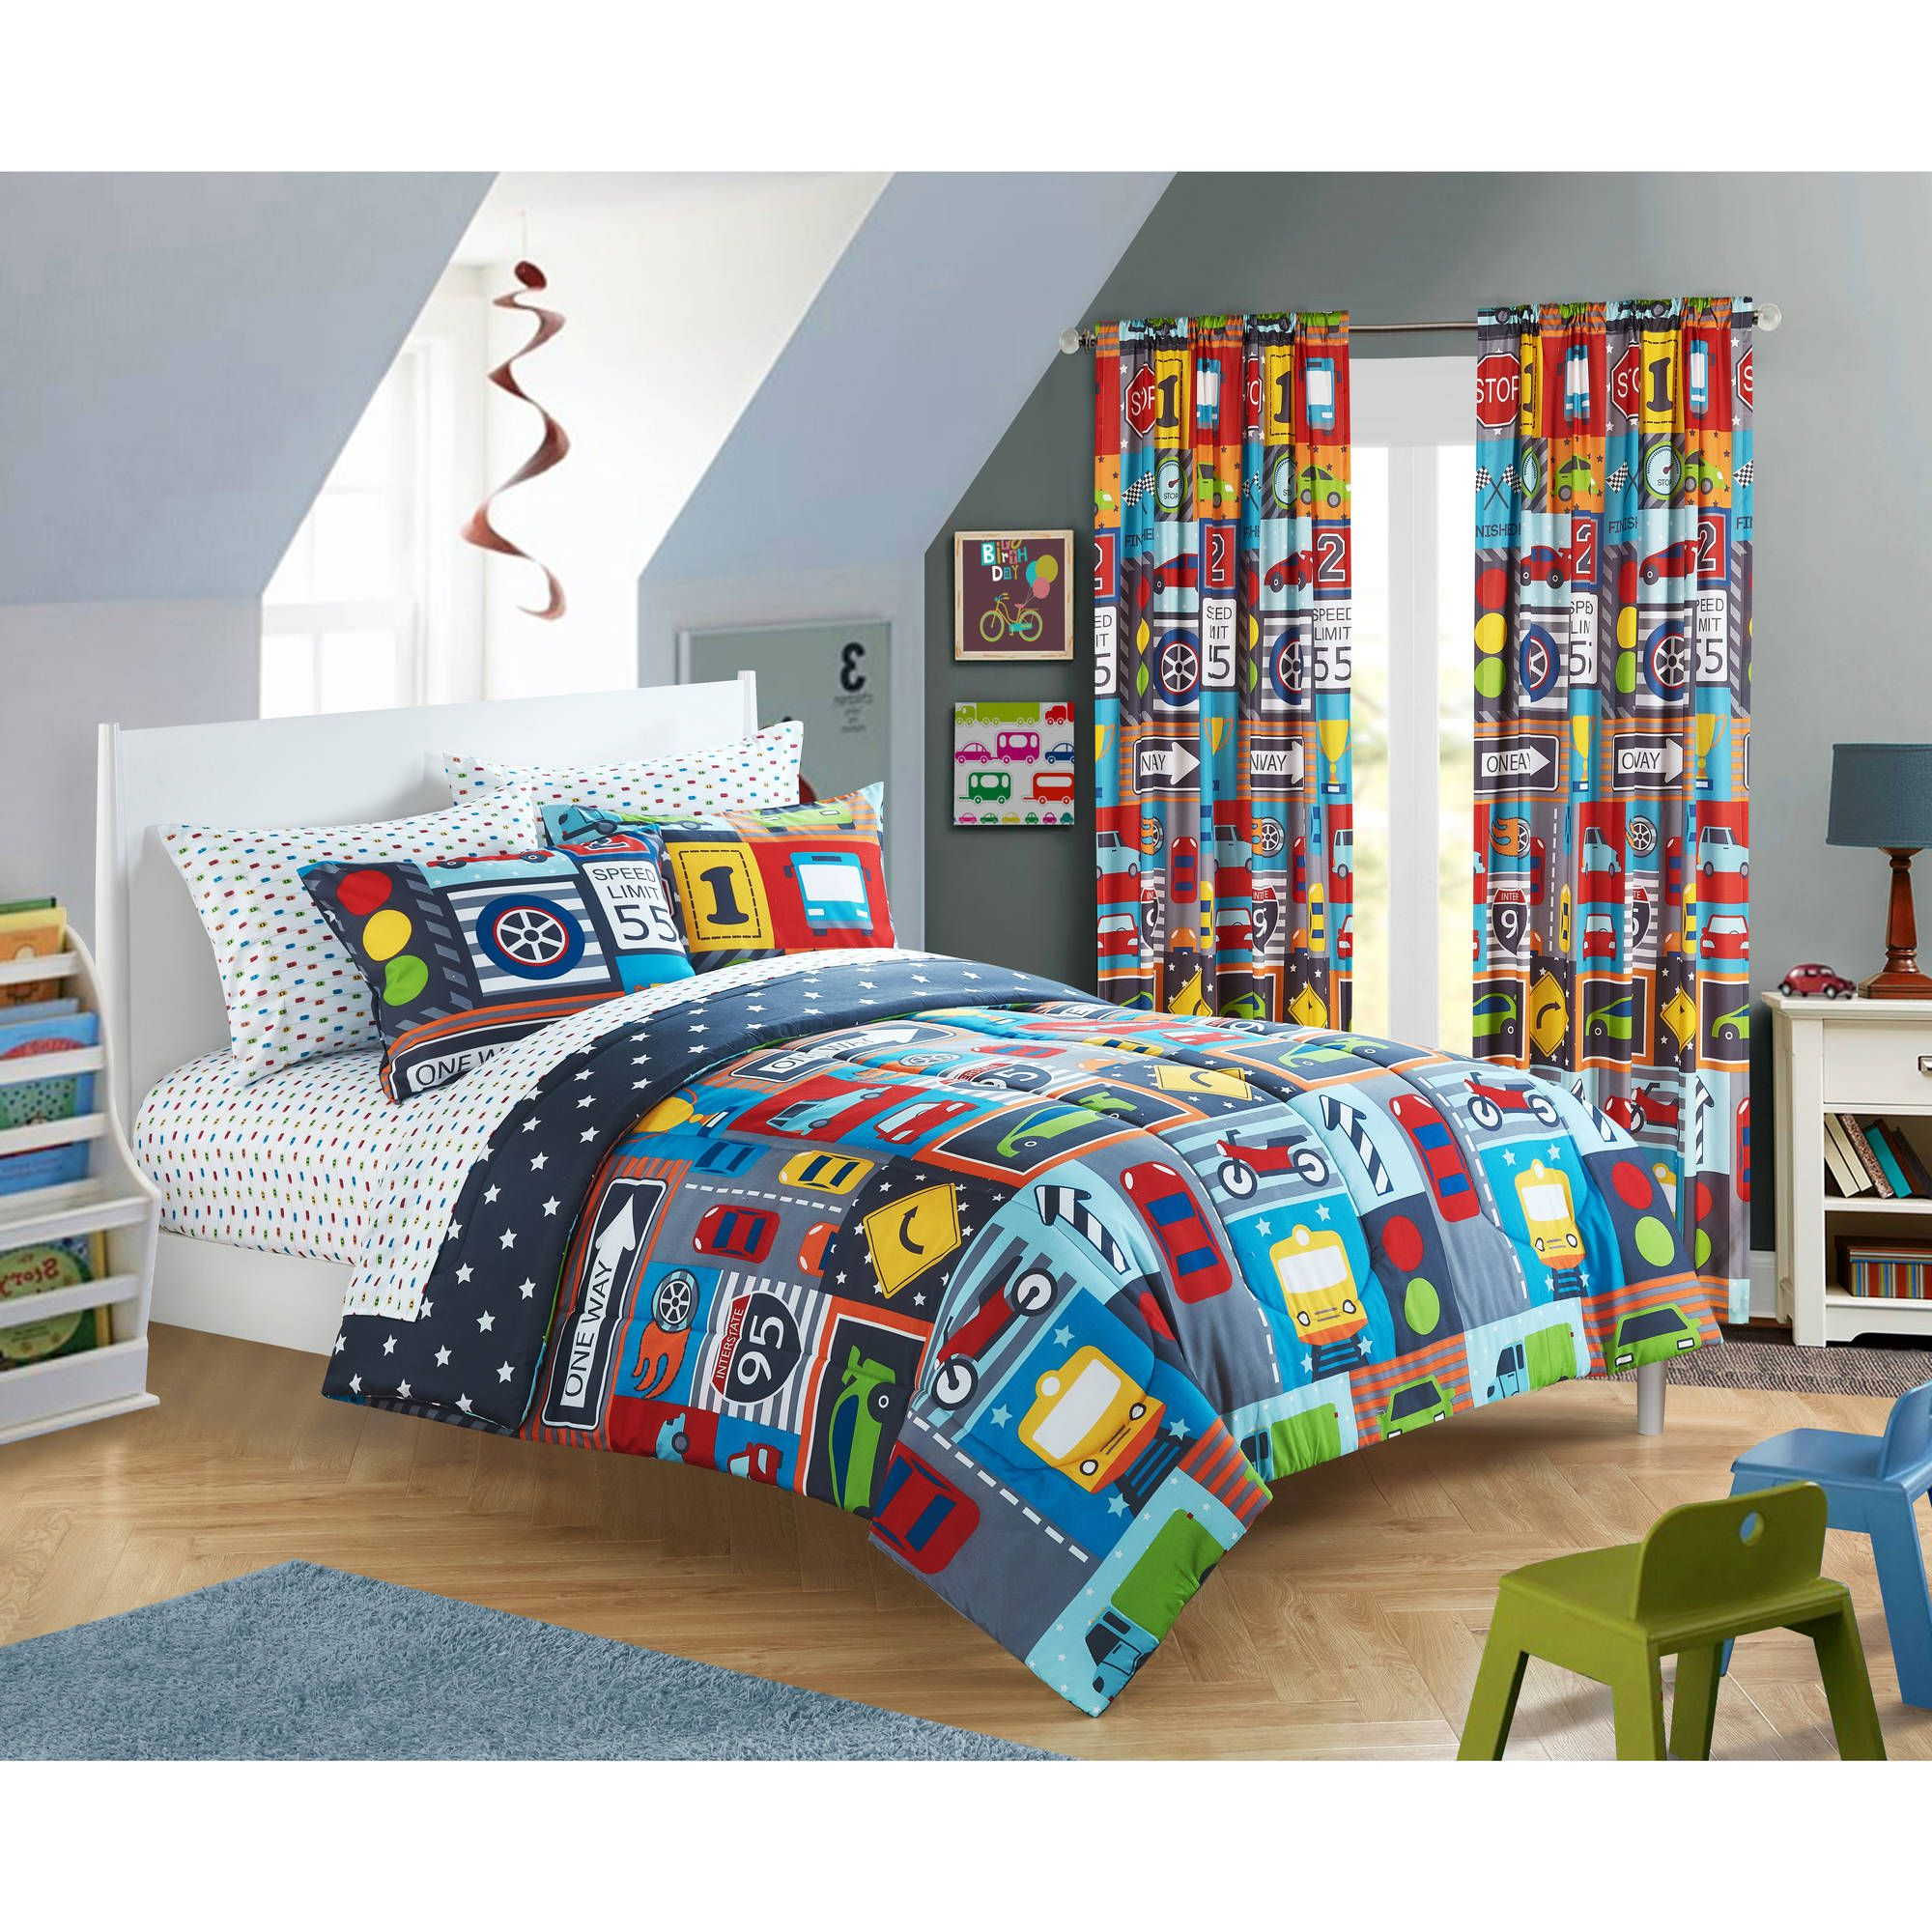 size full trends king ideas a bedding and bedroom asian siize xf of bed incredible awesome u bag in kids comforter sets comforters